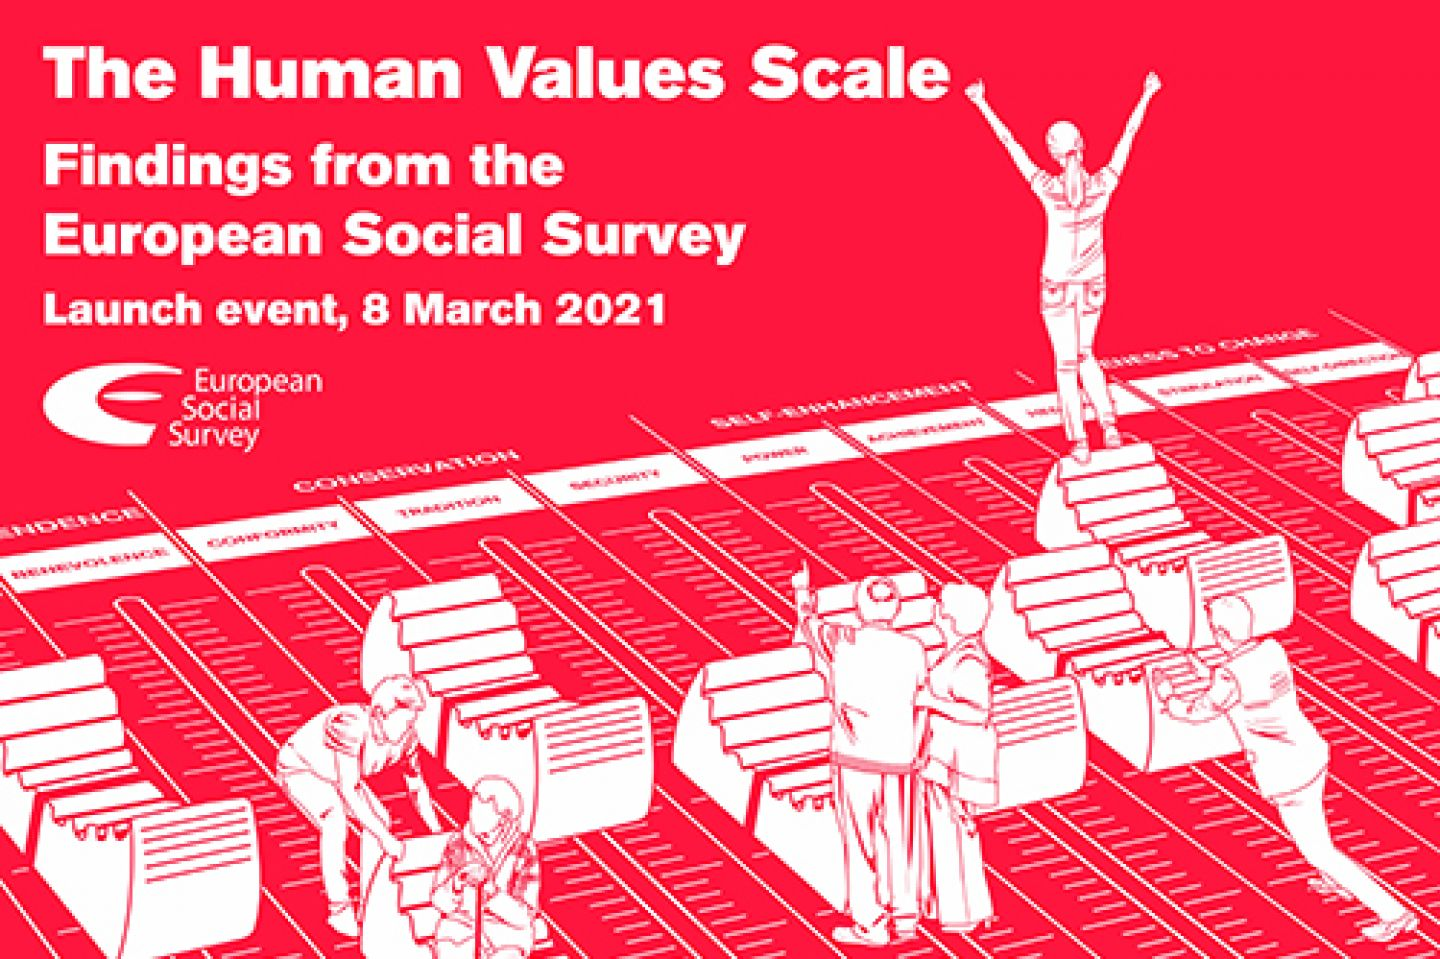 The Human Values Scale - findings from the European Social Survey. Launch event 8 March 2021